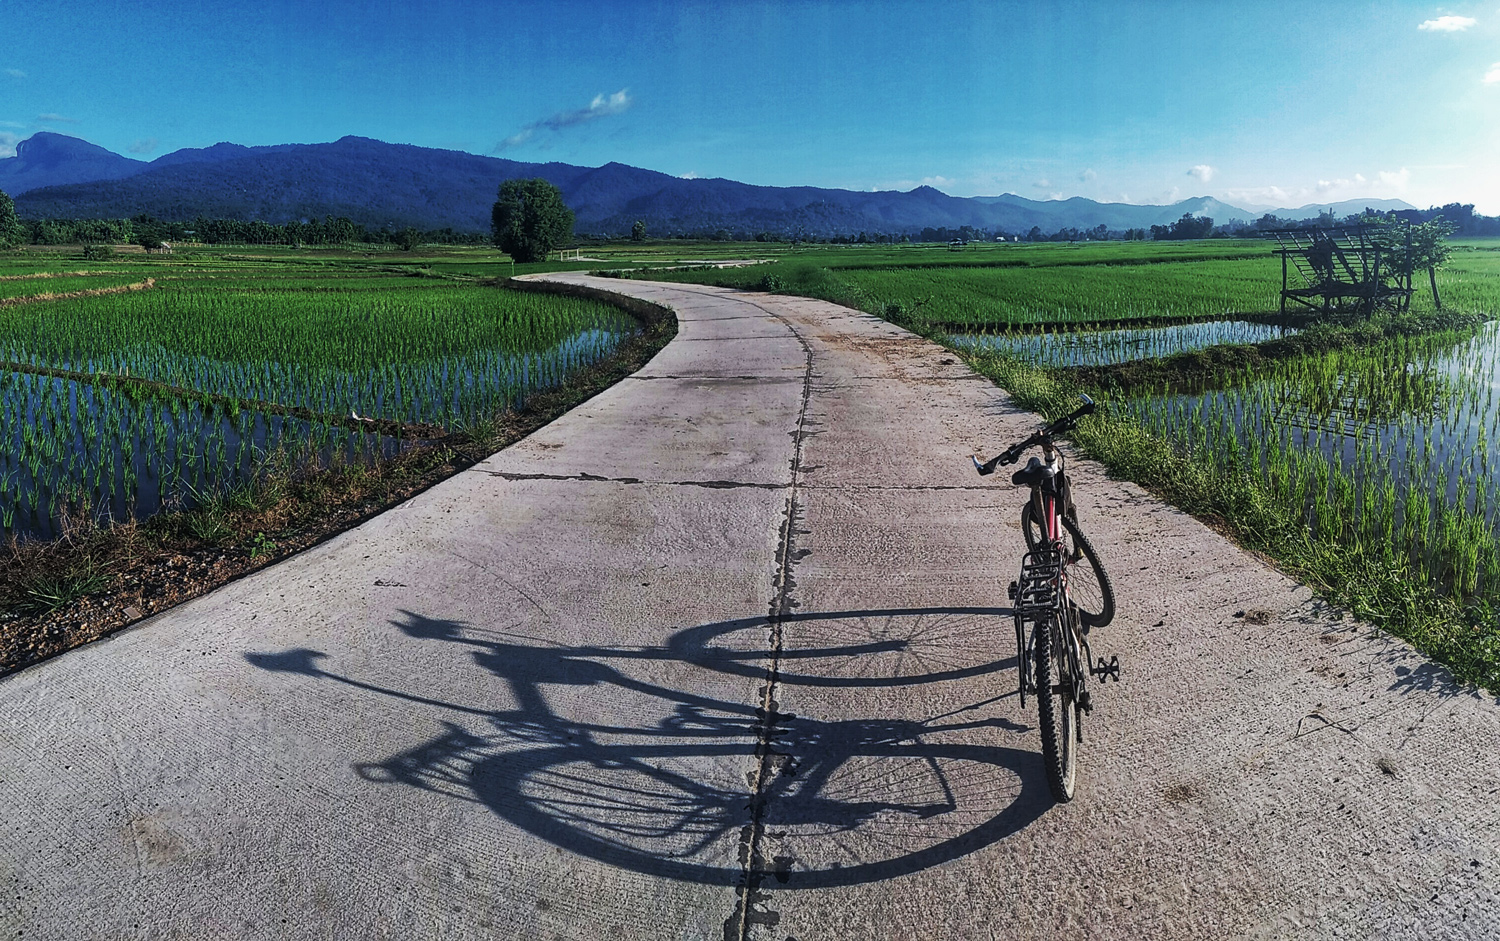 bike on a path with a shadow - Pros and Cons of Upgrading from a Phone to a Real Camera